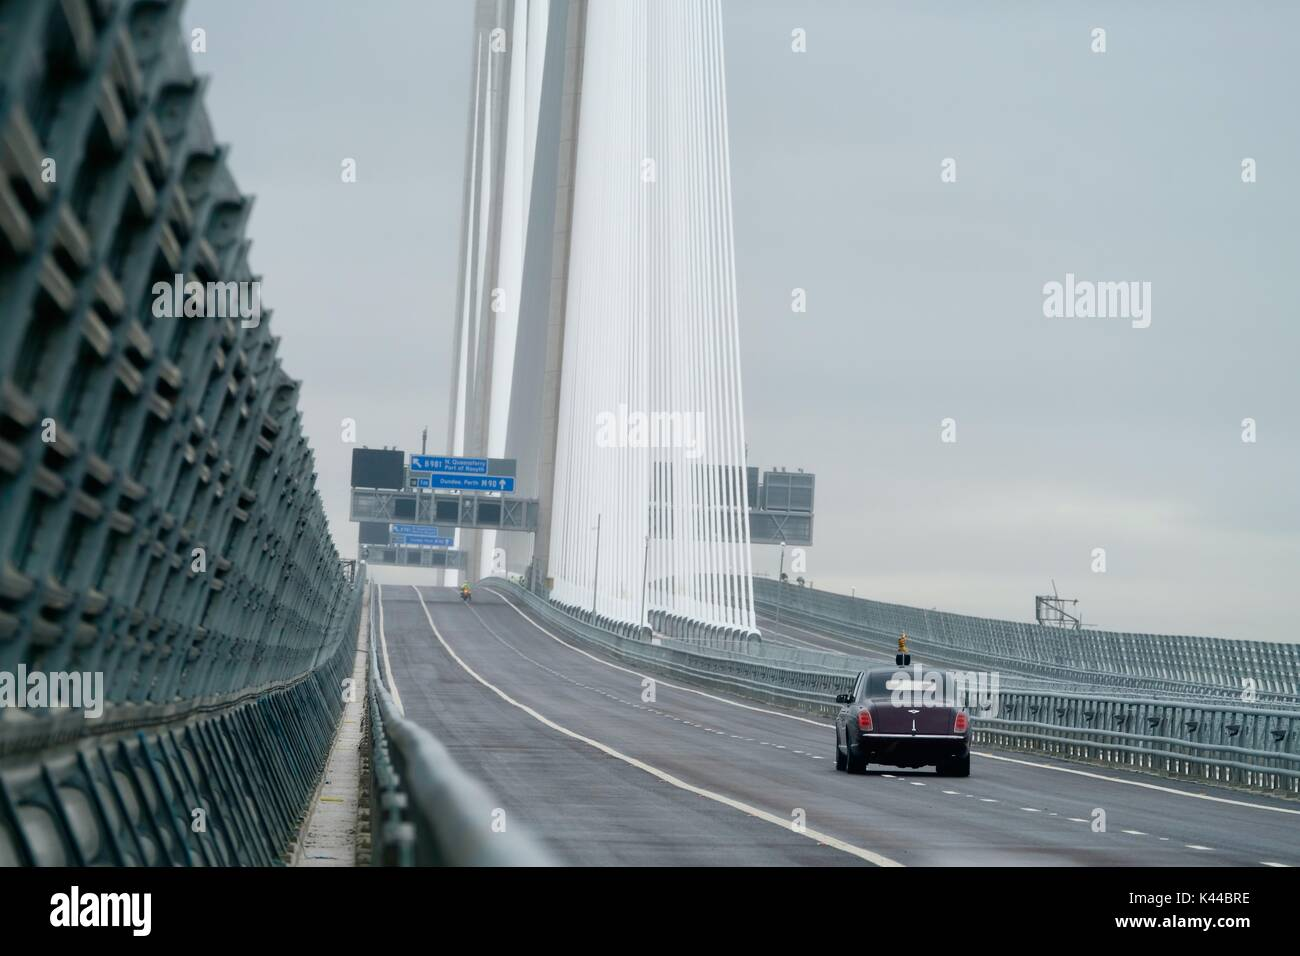 South Queensferry, Edinburgh, UK. 04th Sep, 2017. Queen Elizabeth II opens new Queensferry crossing accompanied by First Minister of Scotland Nicola Sturgeon. Credit: Iain Masterton/Alamy Live News - Stock Image